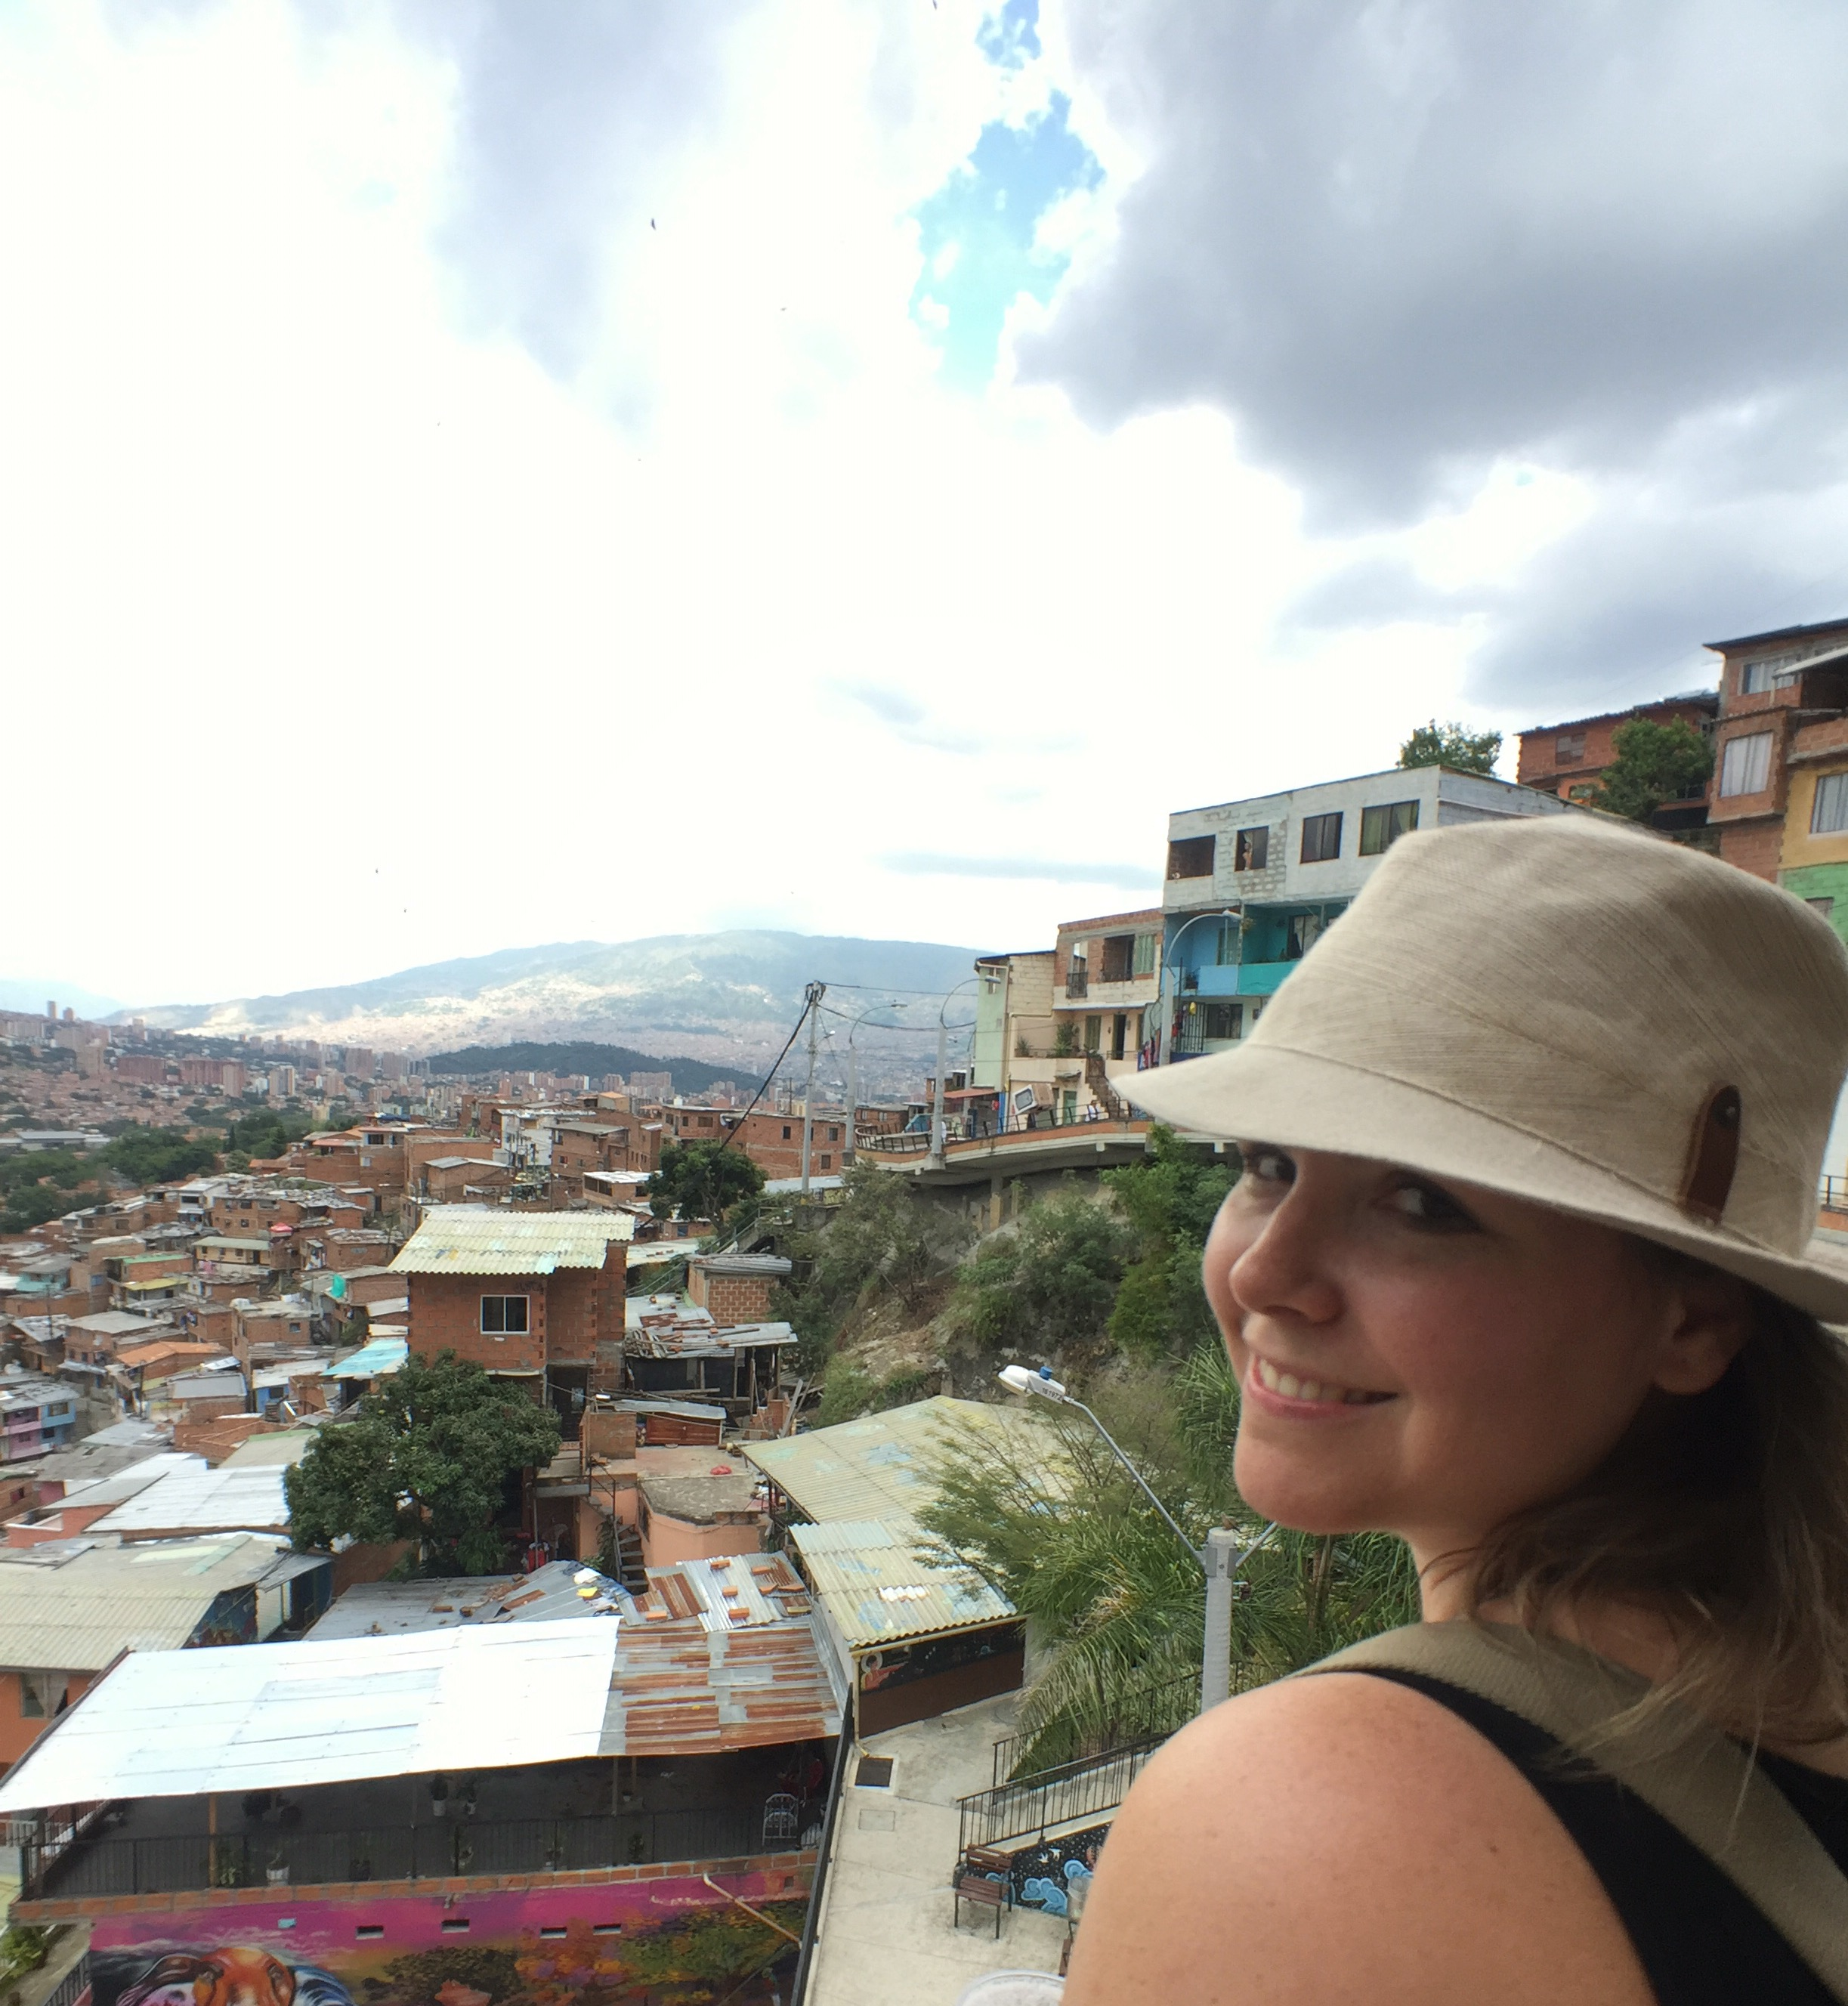 Medellin, Colombia. The view from Comuna 13.